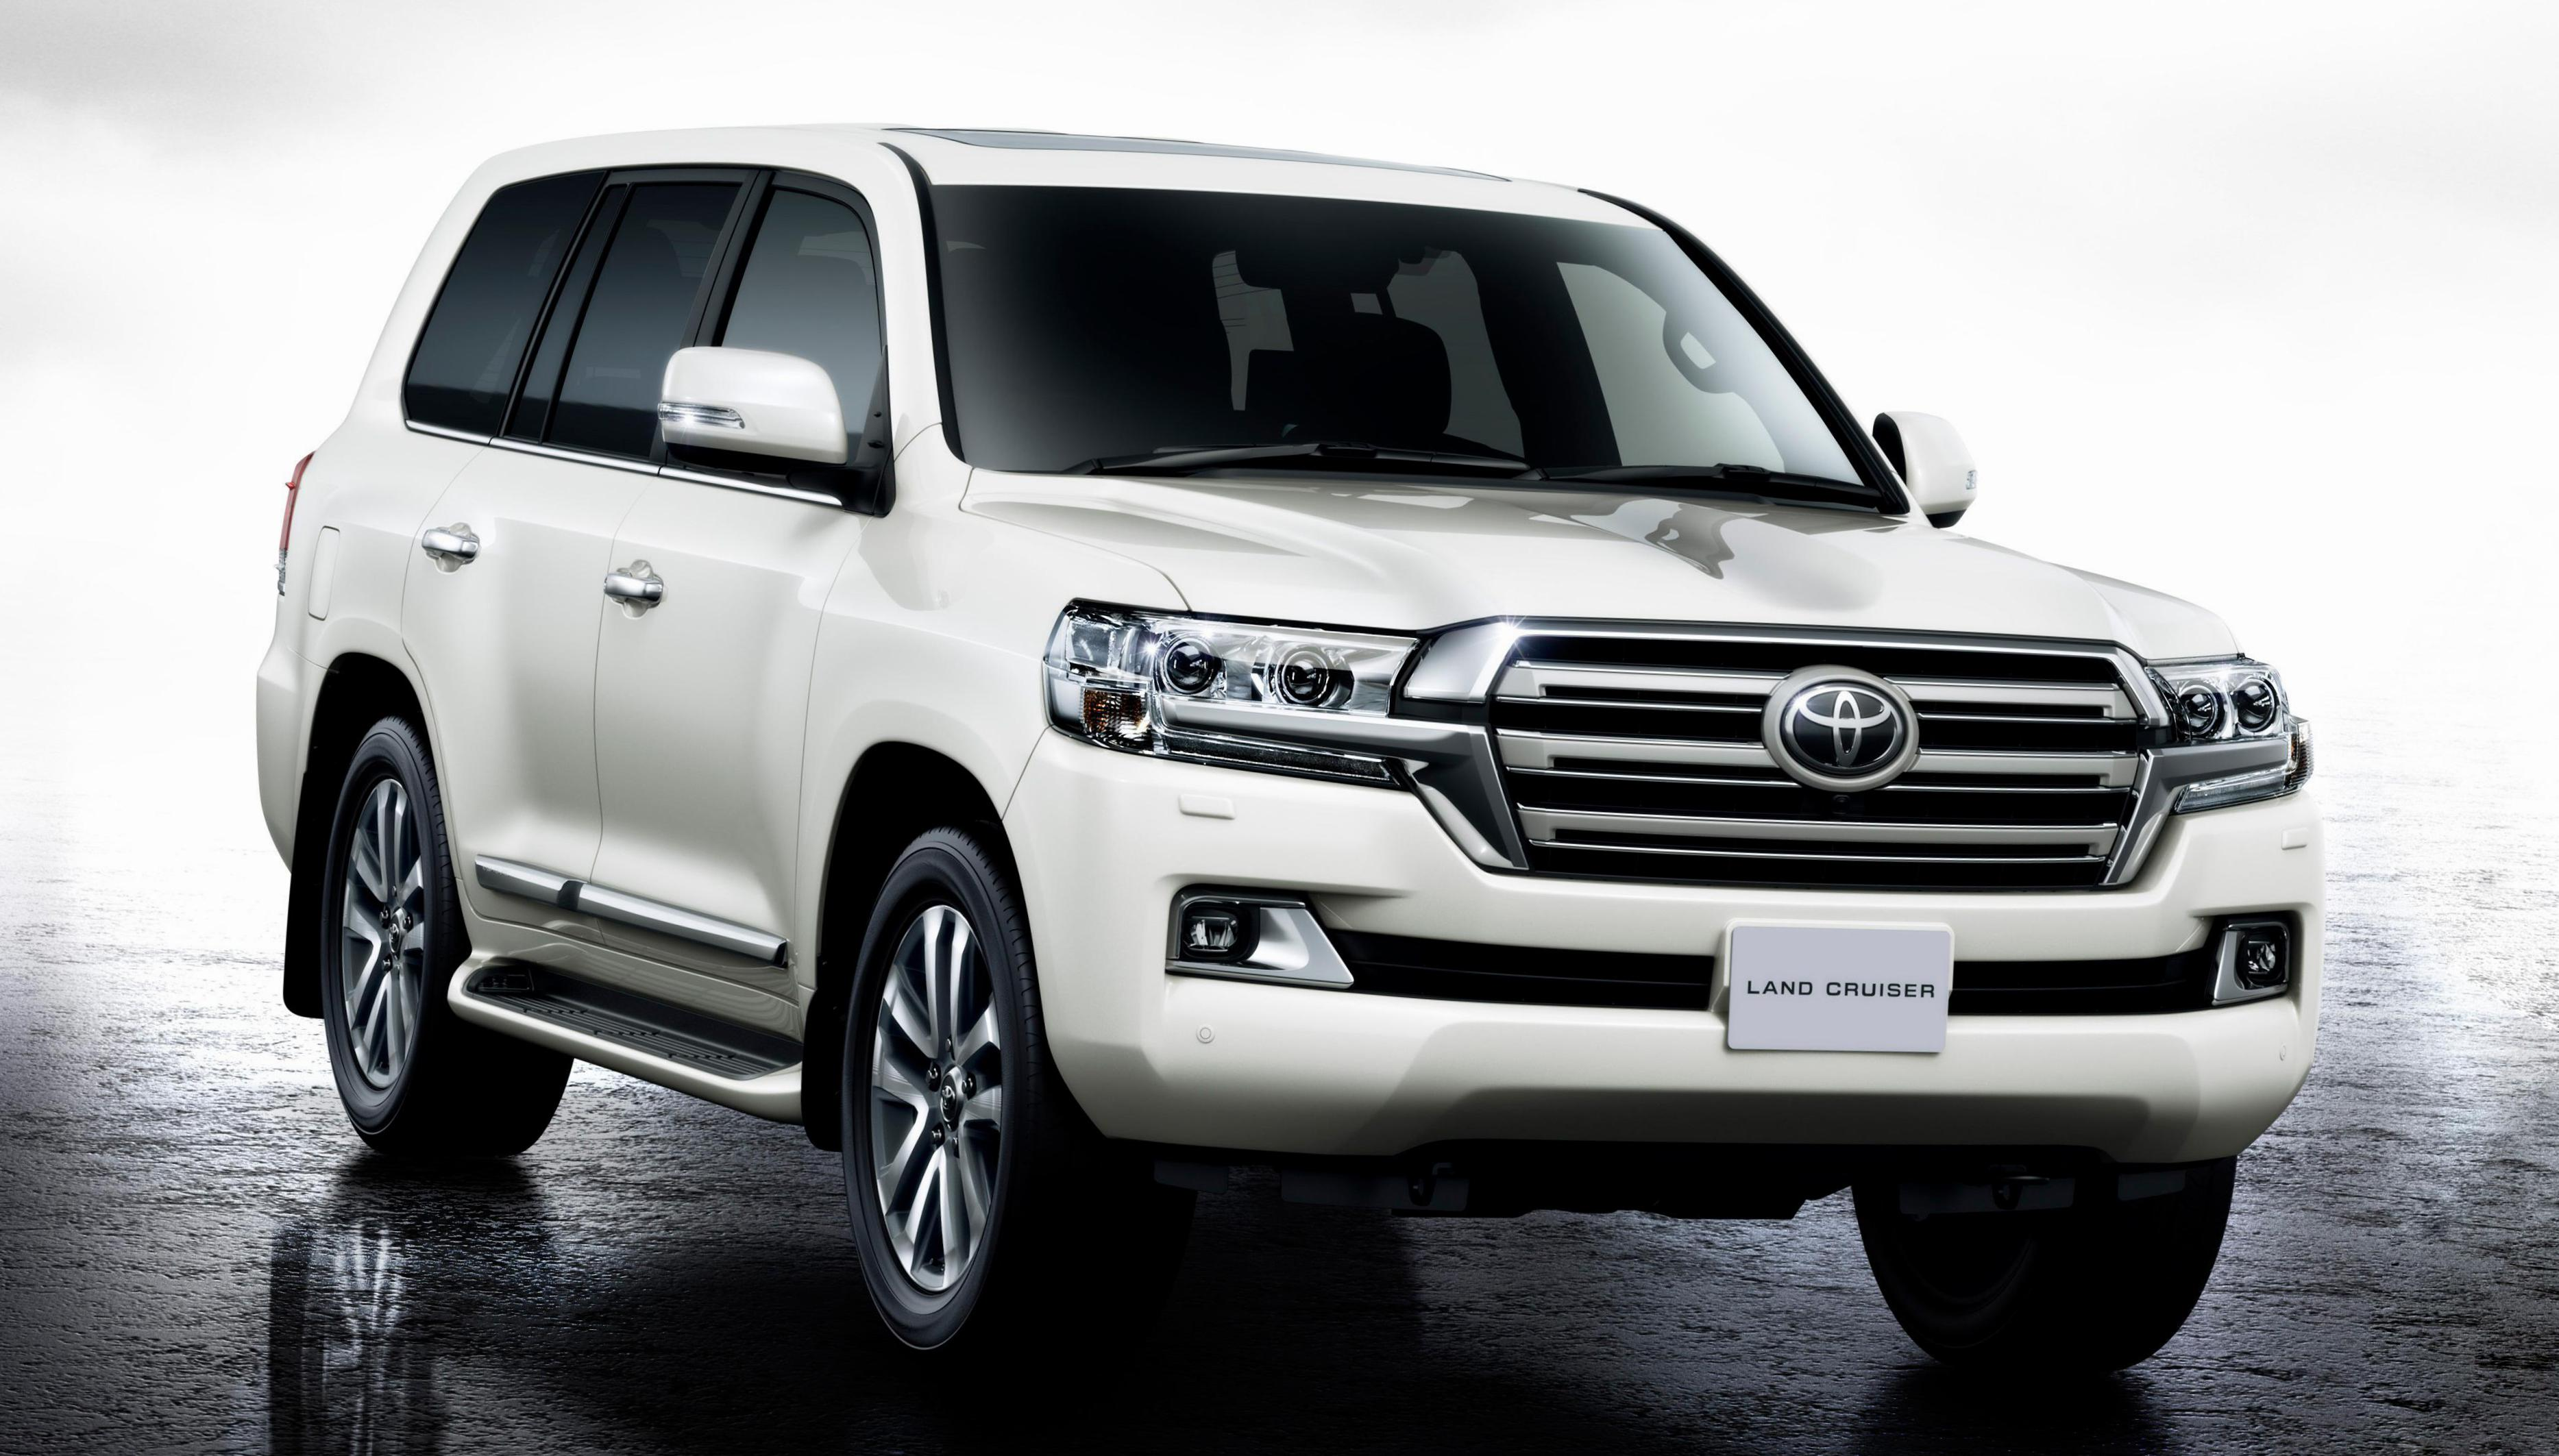 Toyota Land Cruiser 200 parts 2012